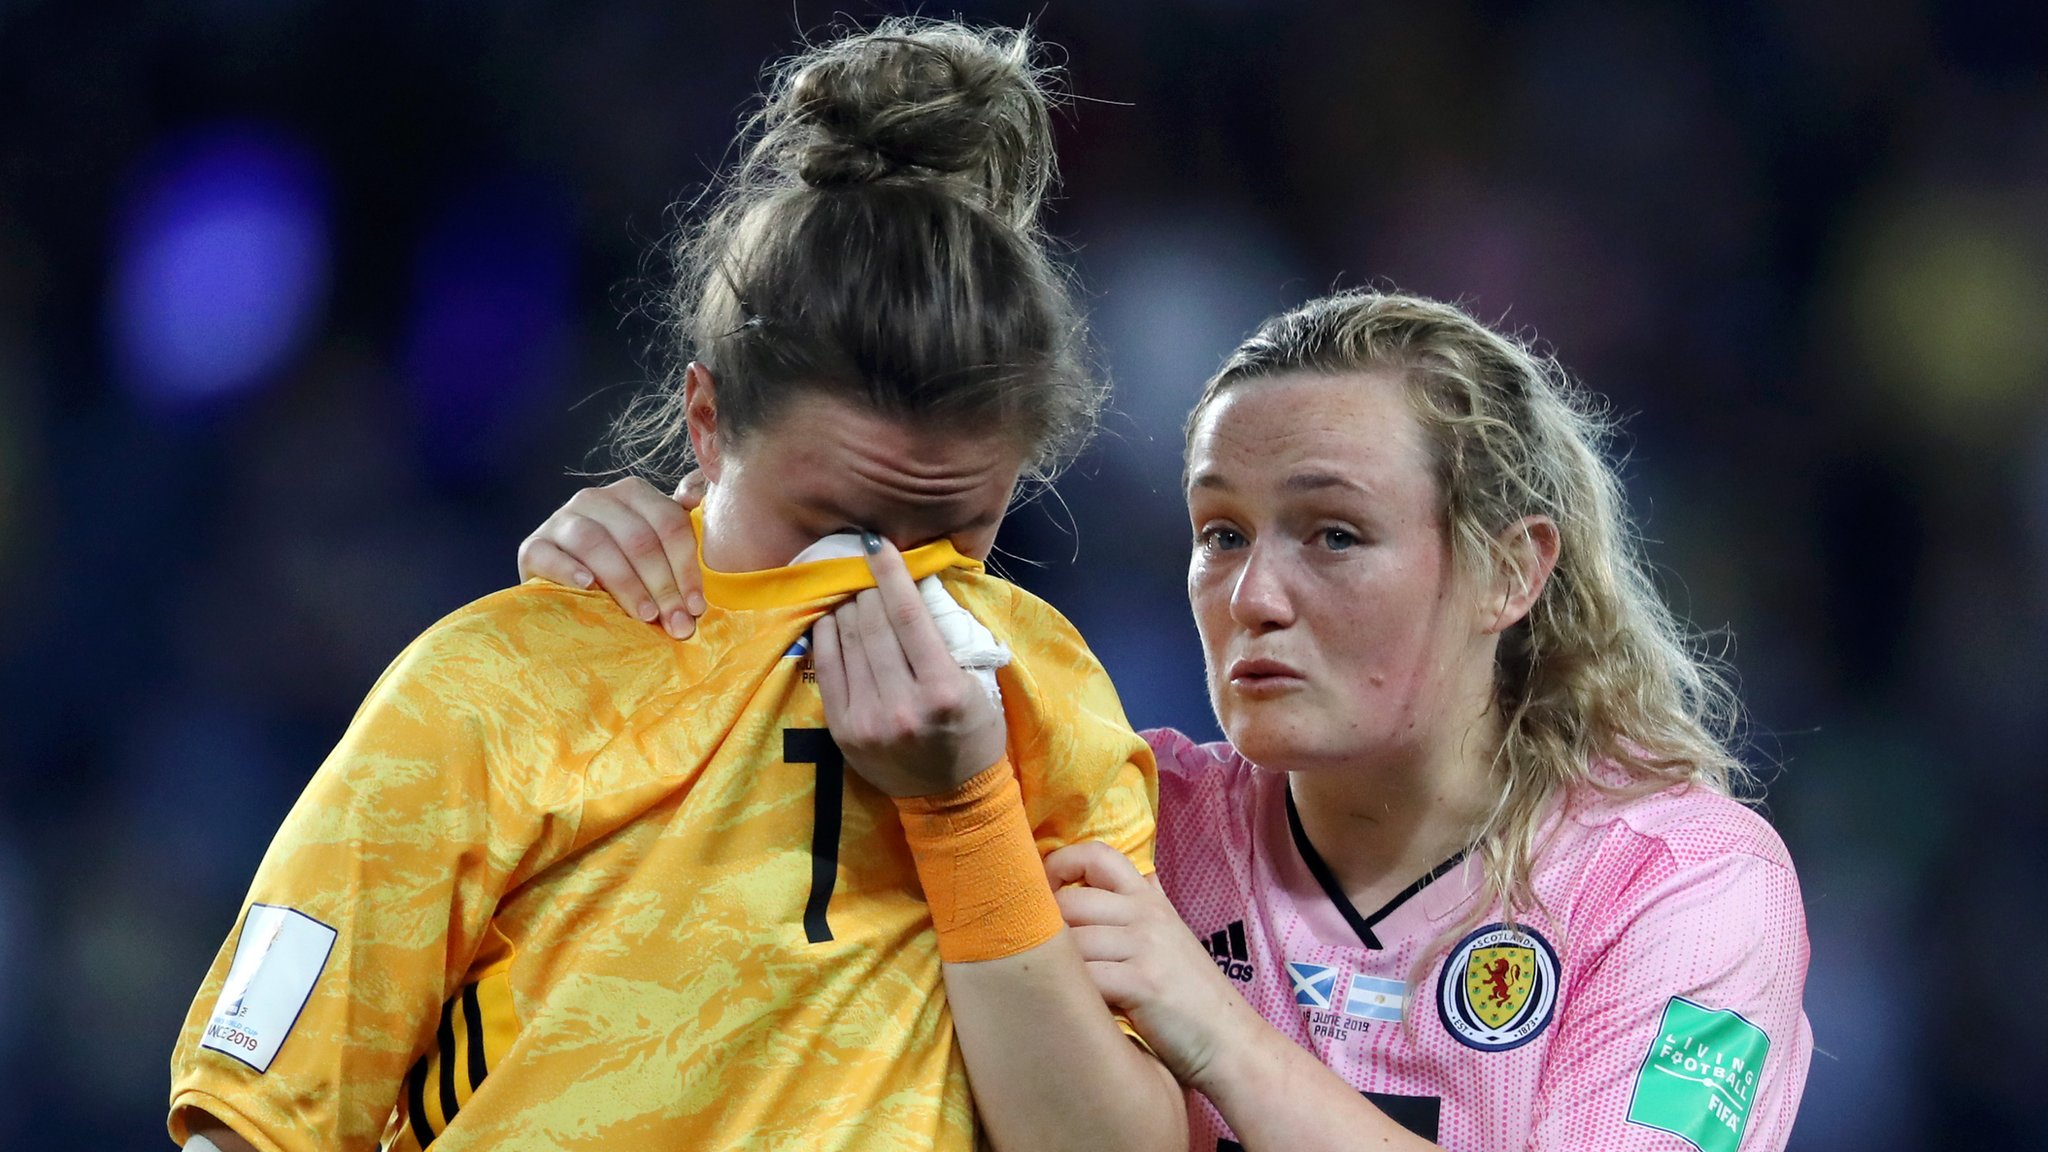 Scotland knocked out of Women's World Cup after dramatic 3-3 draw with Argentina